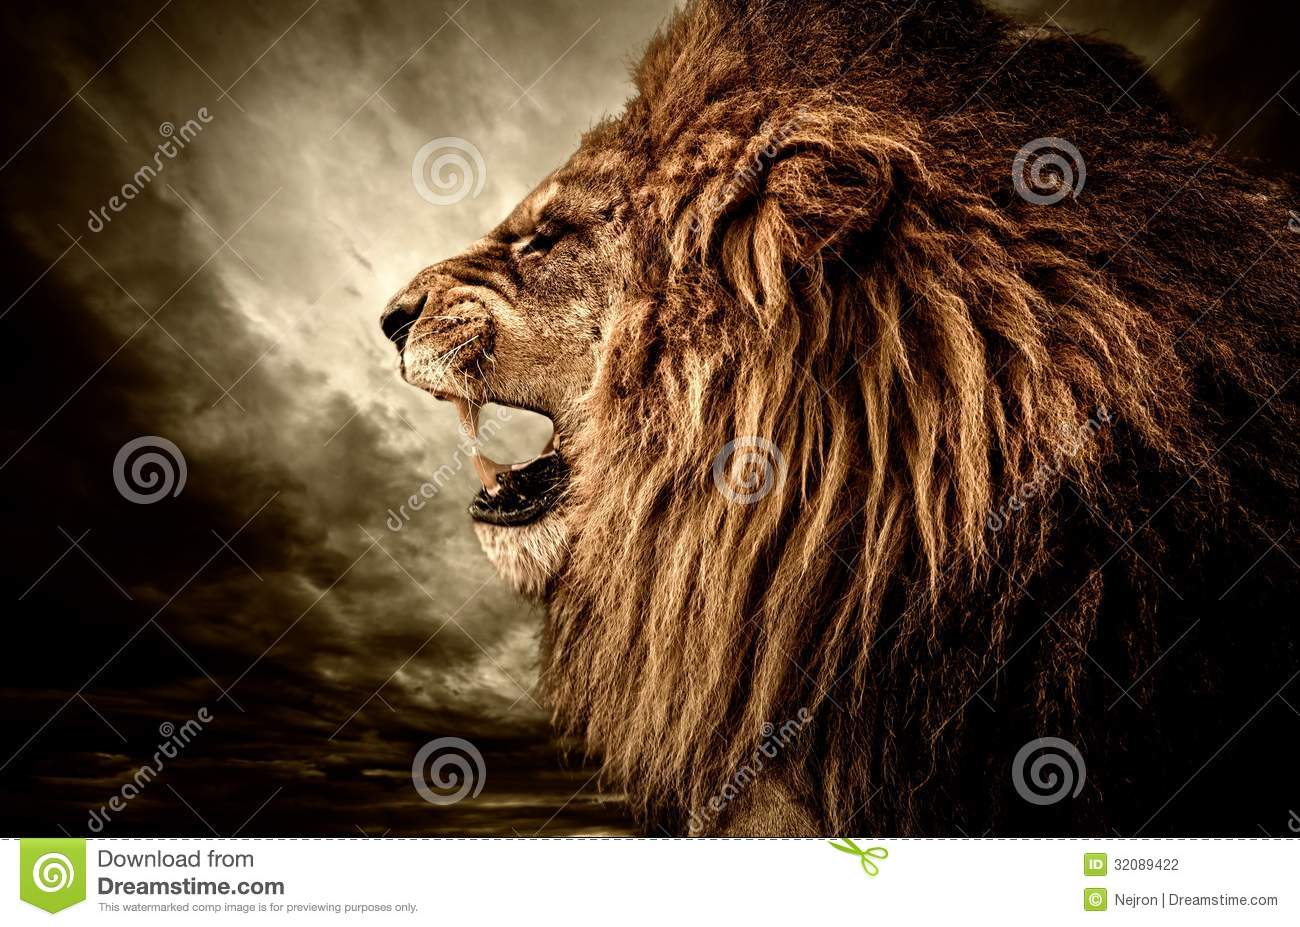 Peacock Wallpaper 3d Angry Lion Stock Photography Image 32089422